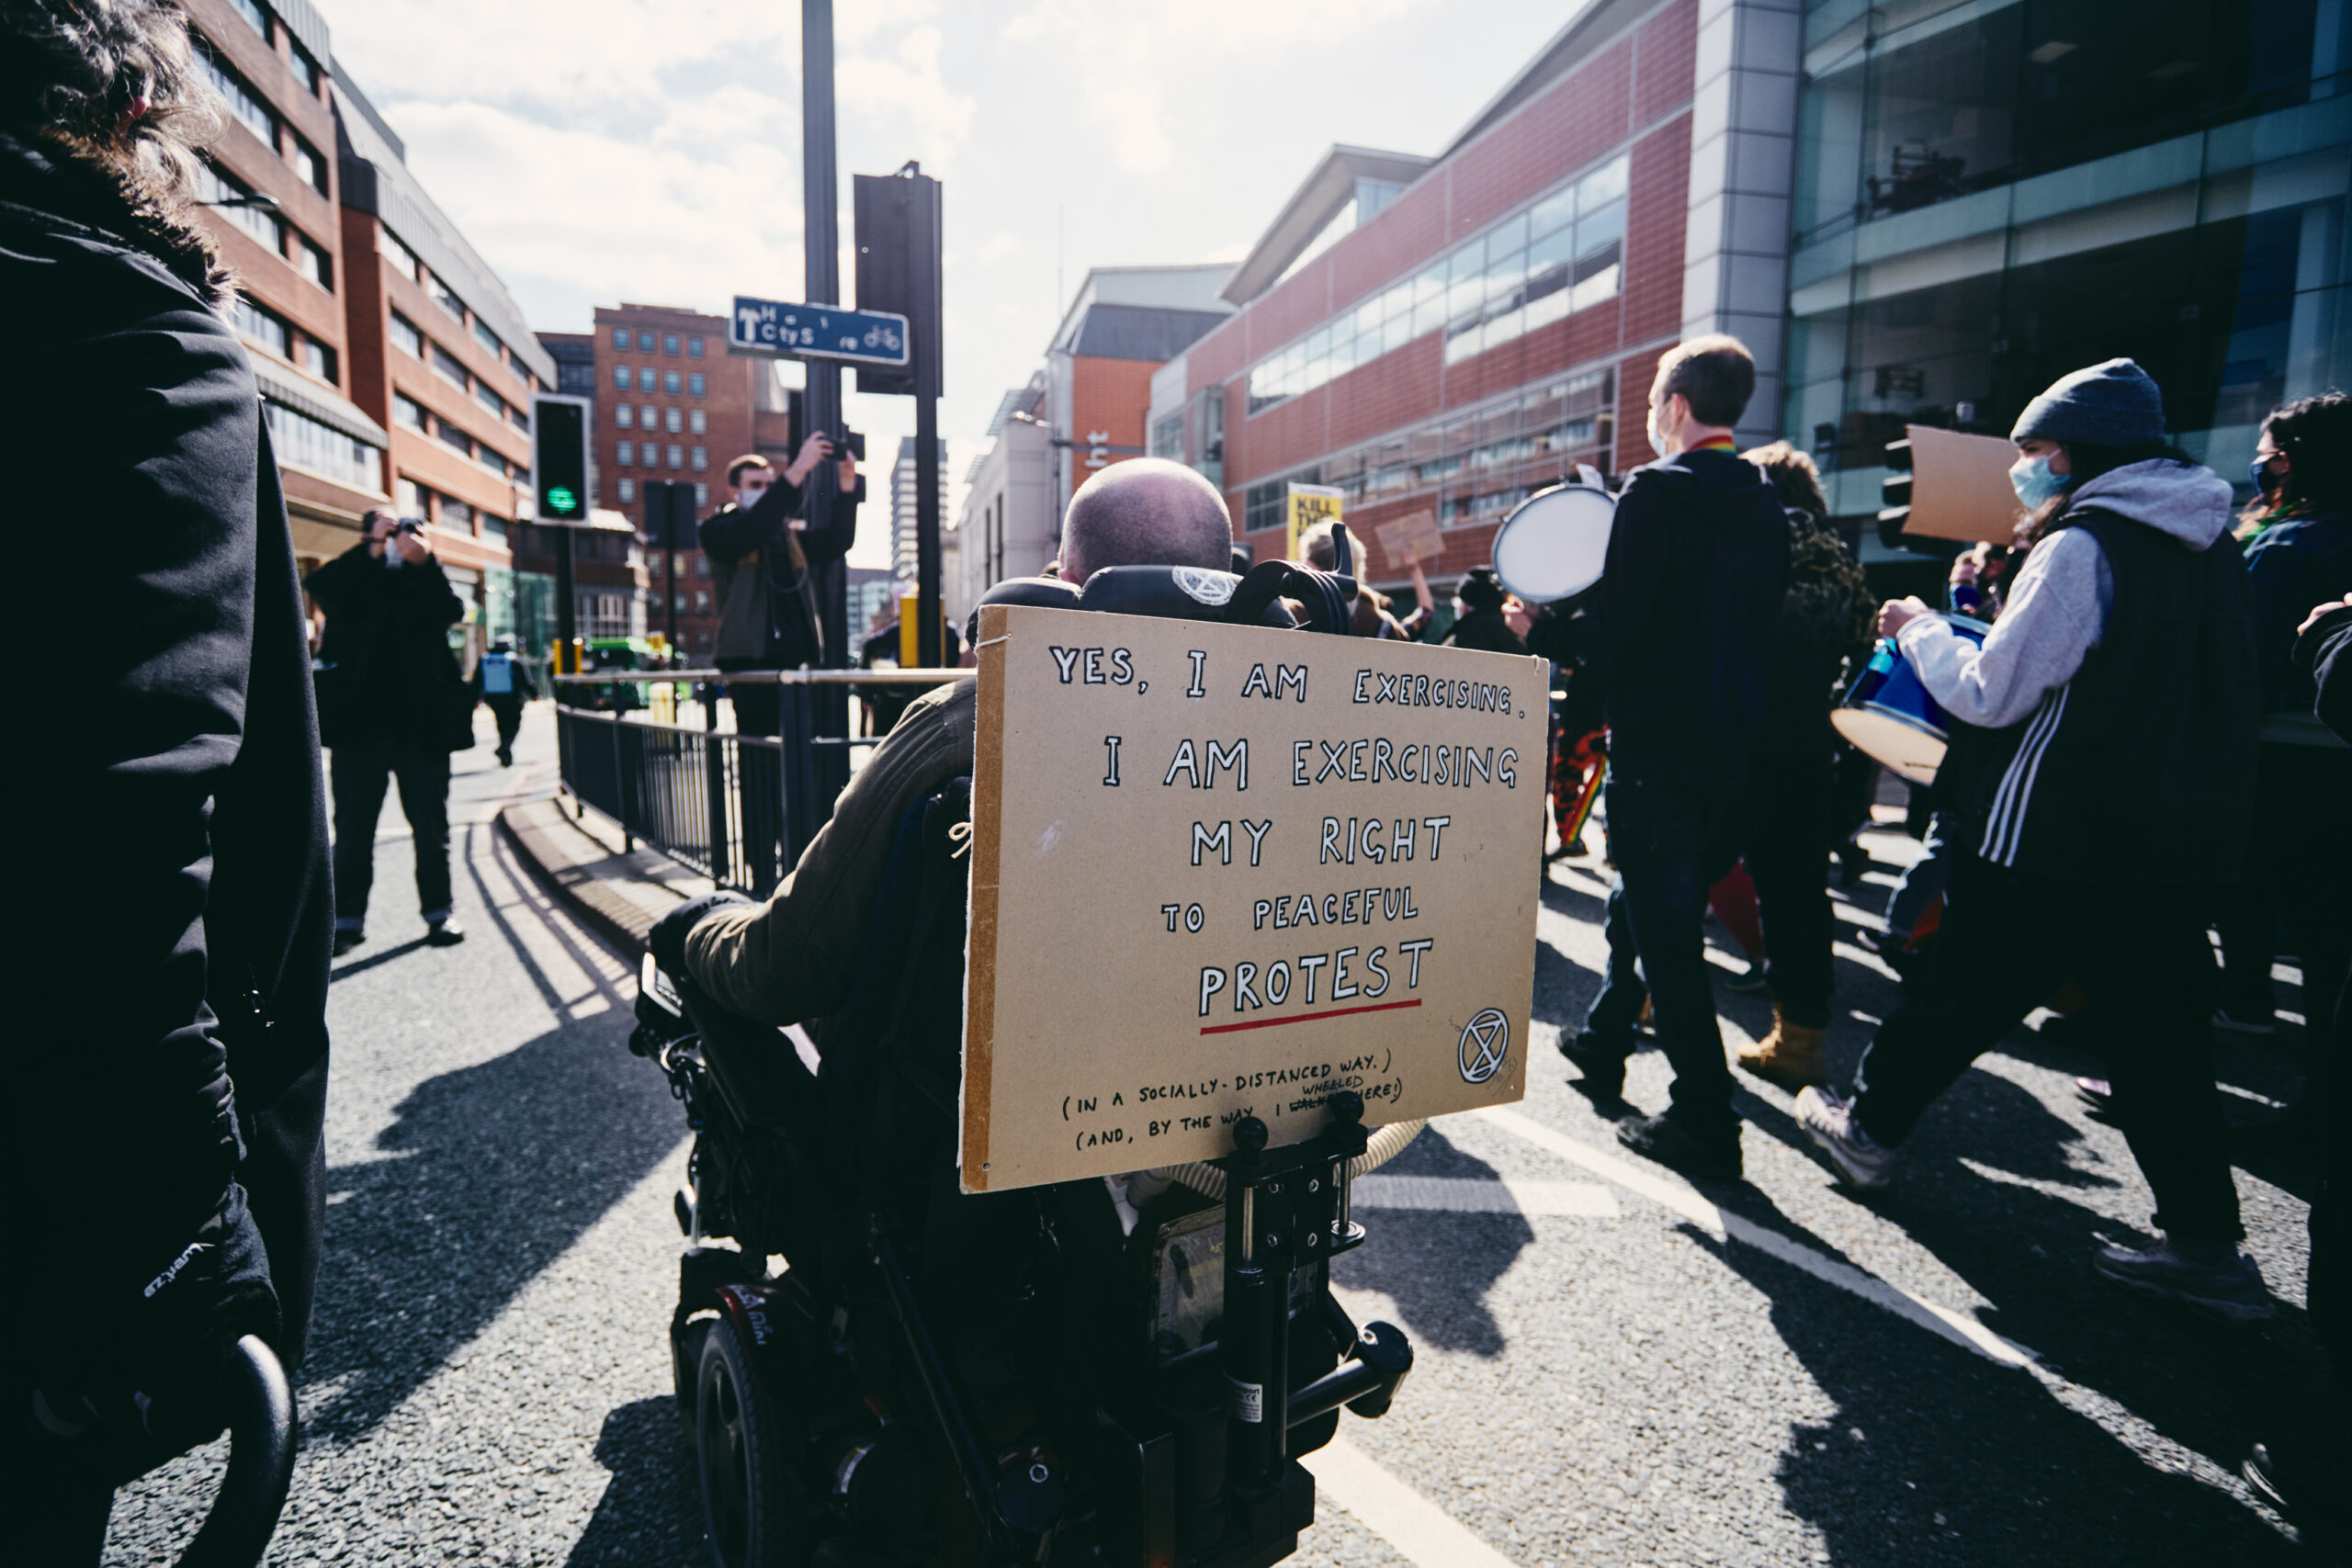 Protestor at the Kill the Bill protest in Leeds with a placard on the back of their wheelchair that says, 'Yes, I am exercising. I am exercising my right to peaceful protest.'